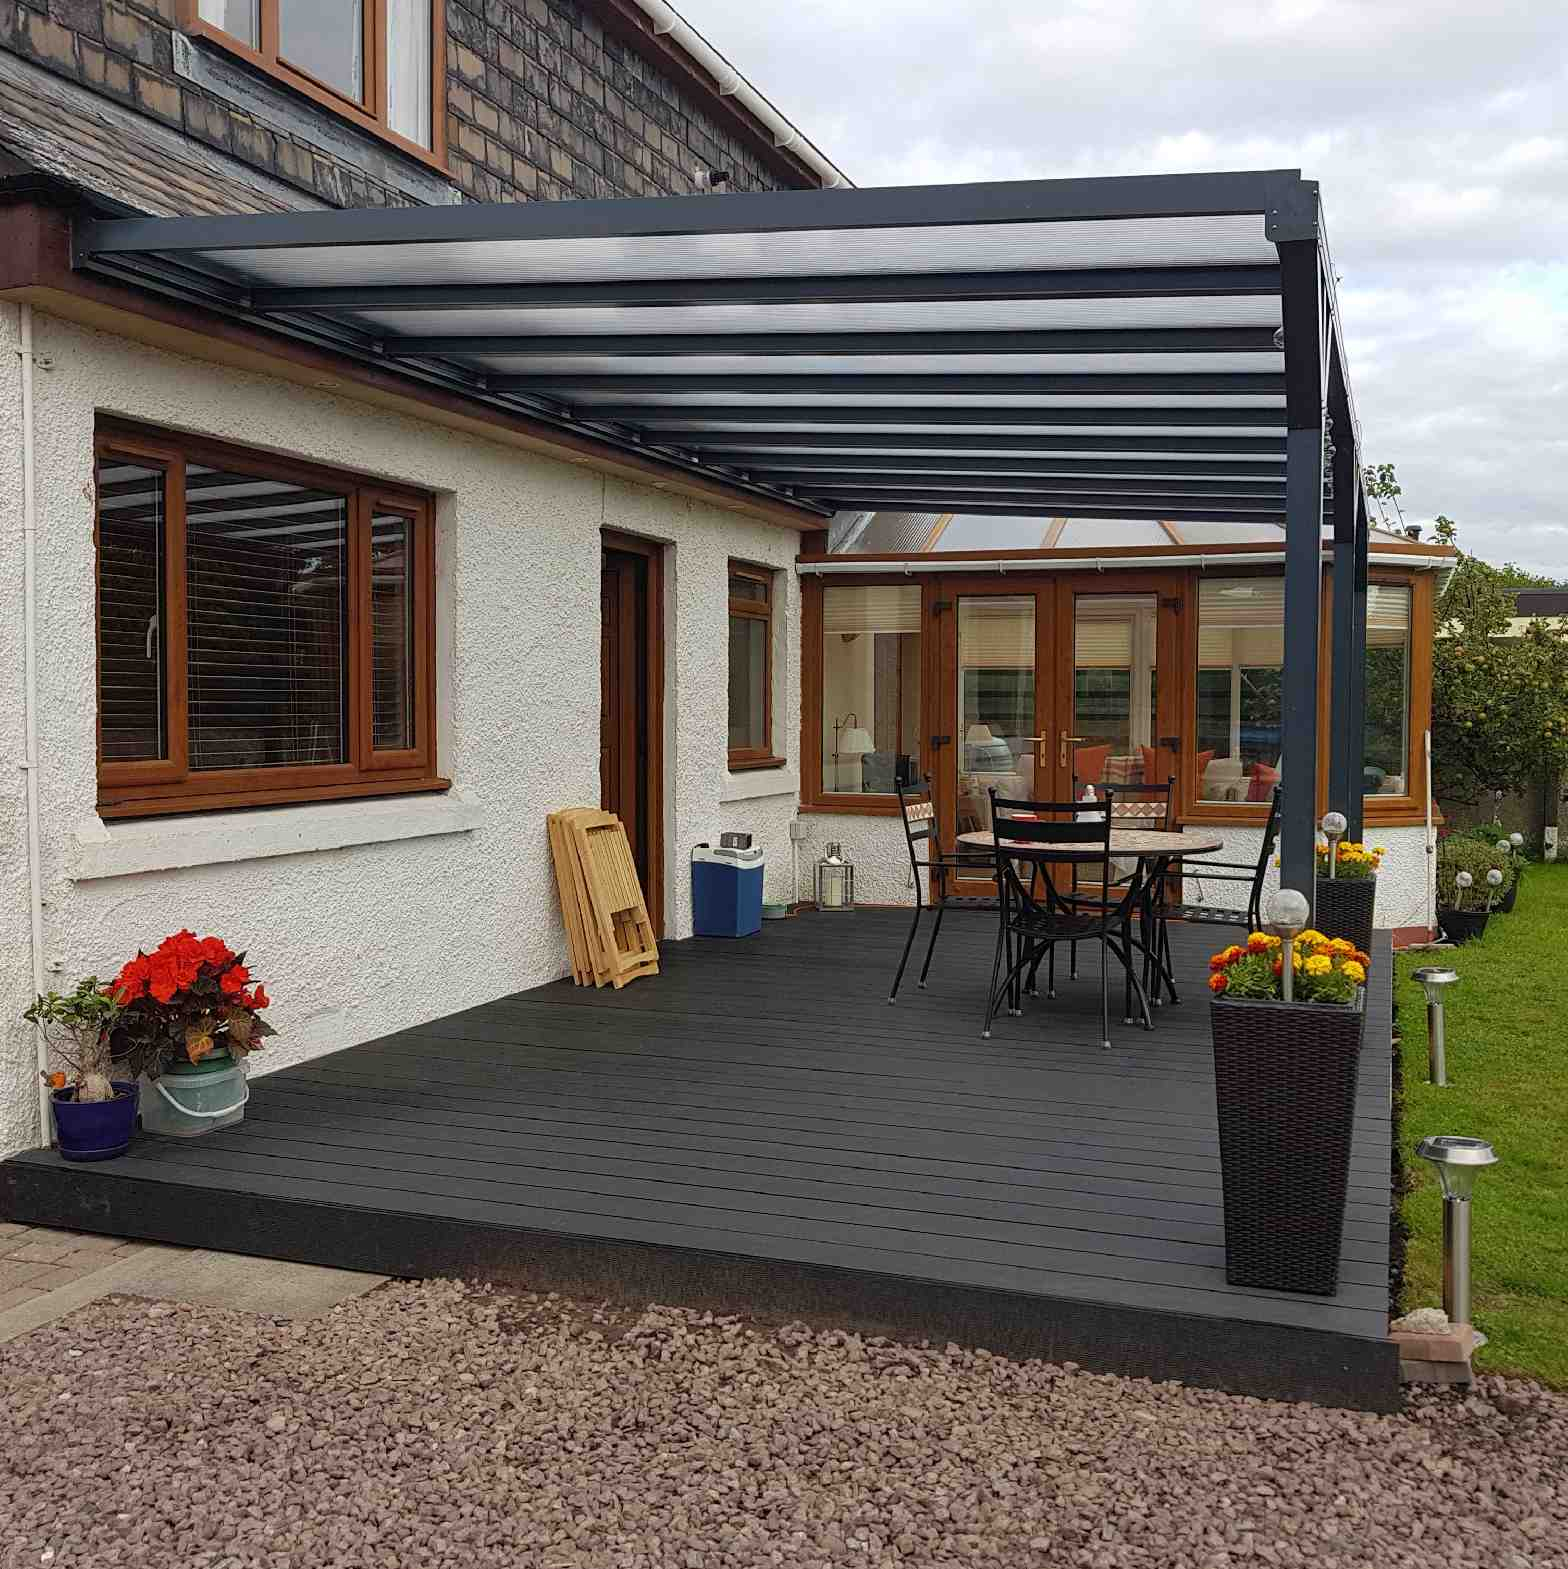 Buy Omega Verandah, Anthracite Grey, 16mm Polycarbonate Glazing - 7.4m (W) x 2.5m (P), (4) Supporting Posts online today